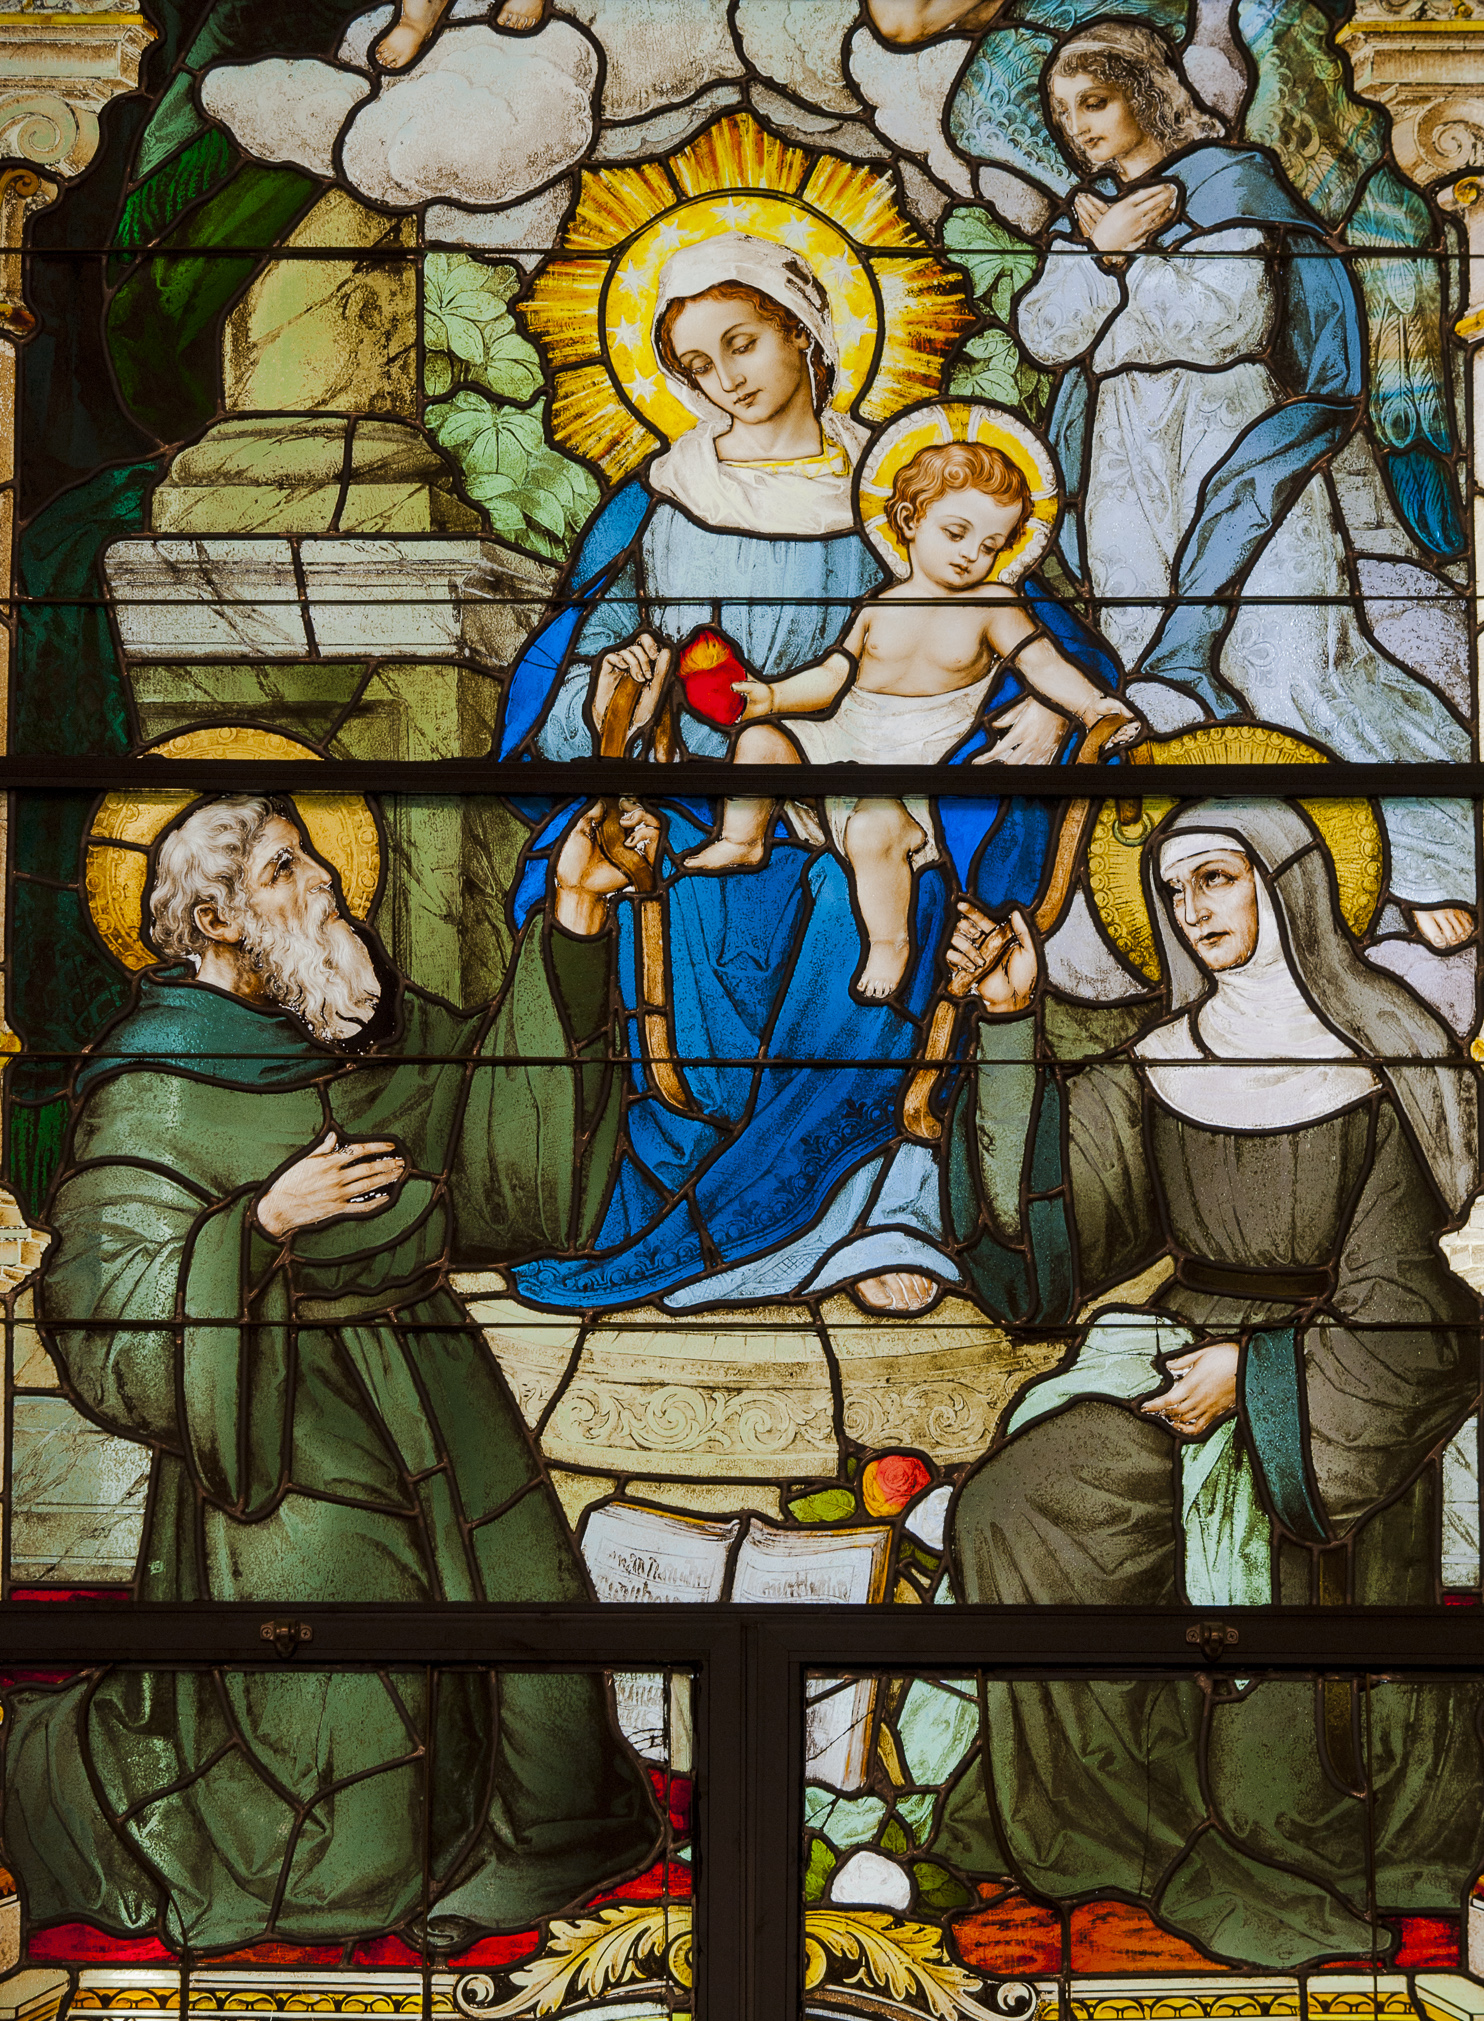 Our Mother of Consolation - bestows upon St. Augustine and his mother, St. Monica, the cincture, as a sign of her promise to intercede on their behalf before God.The Christchild holds a heart on fire, the restless heart of St. Augustine.